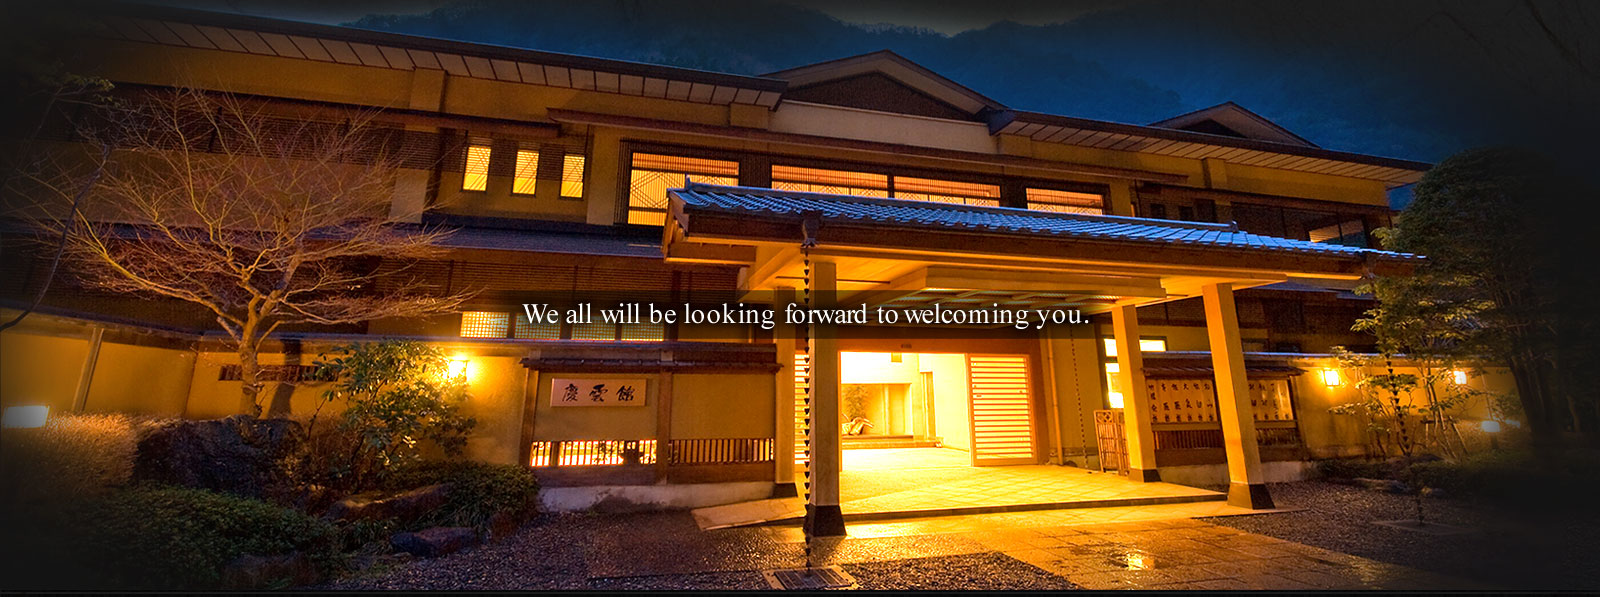 We all will be looking forward to welcoming you.